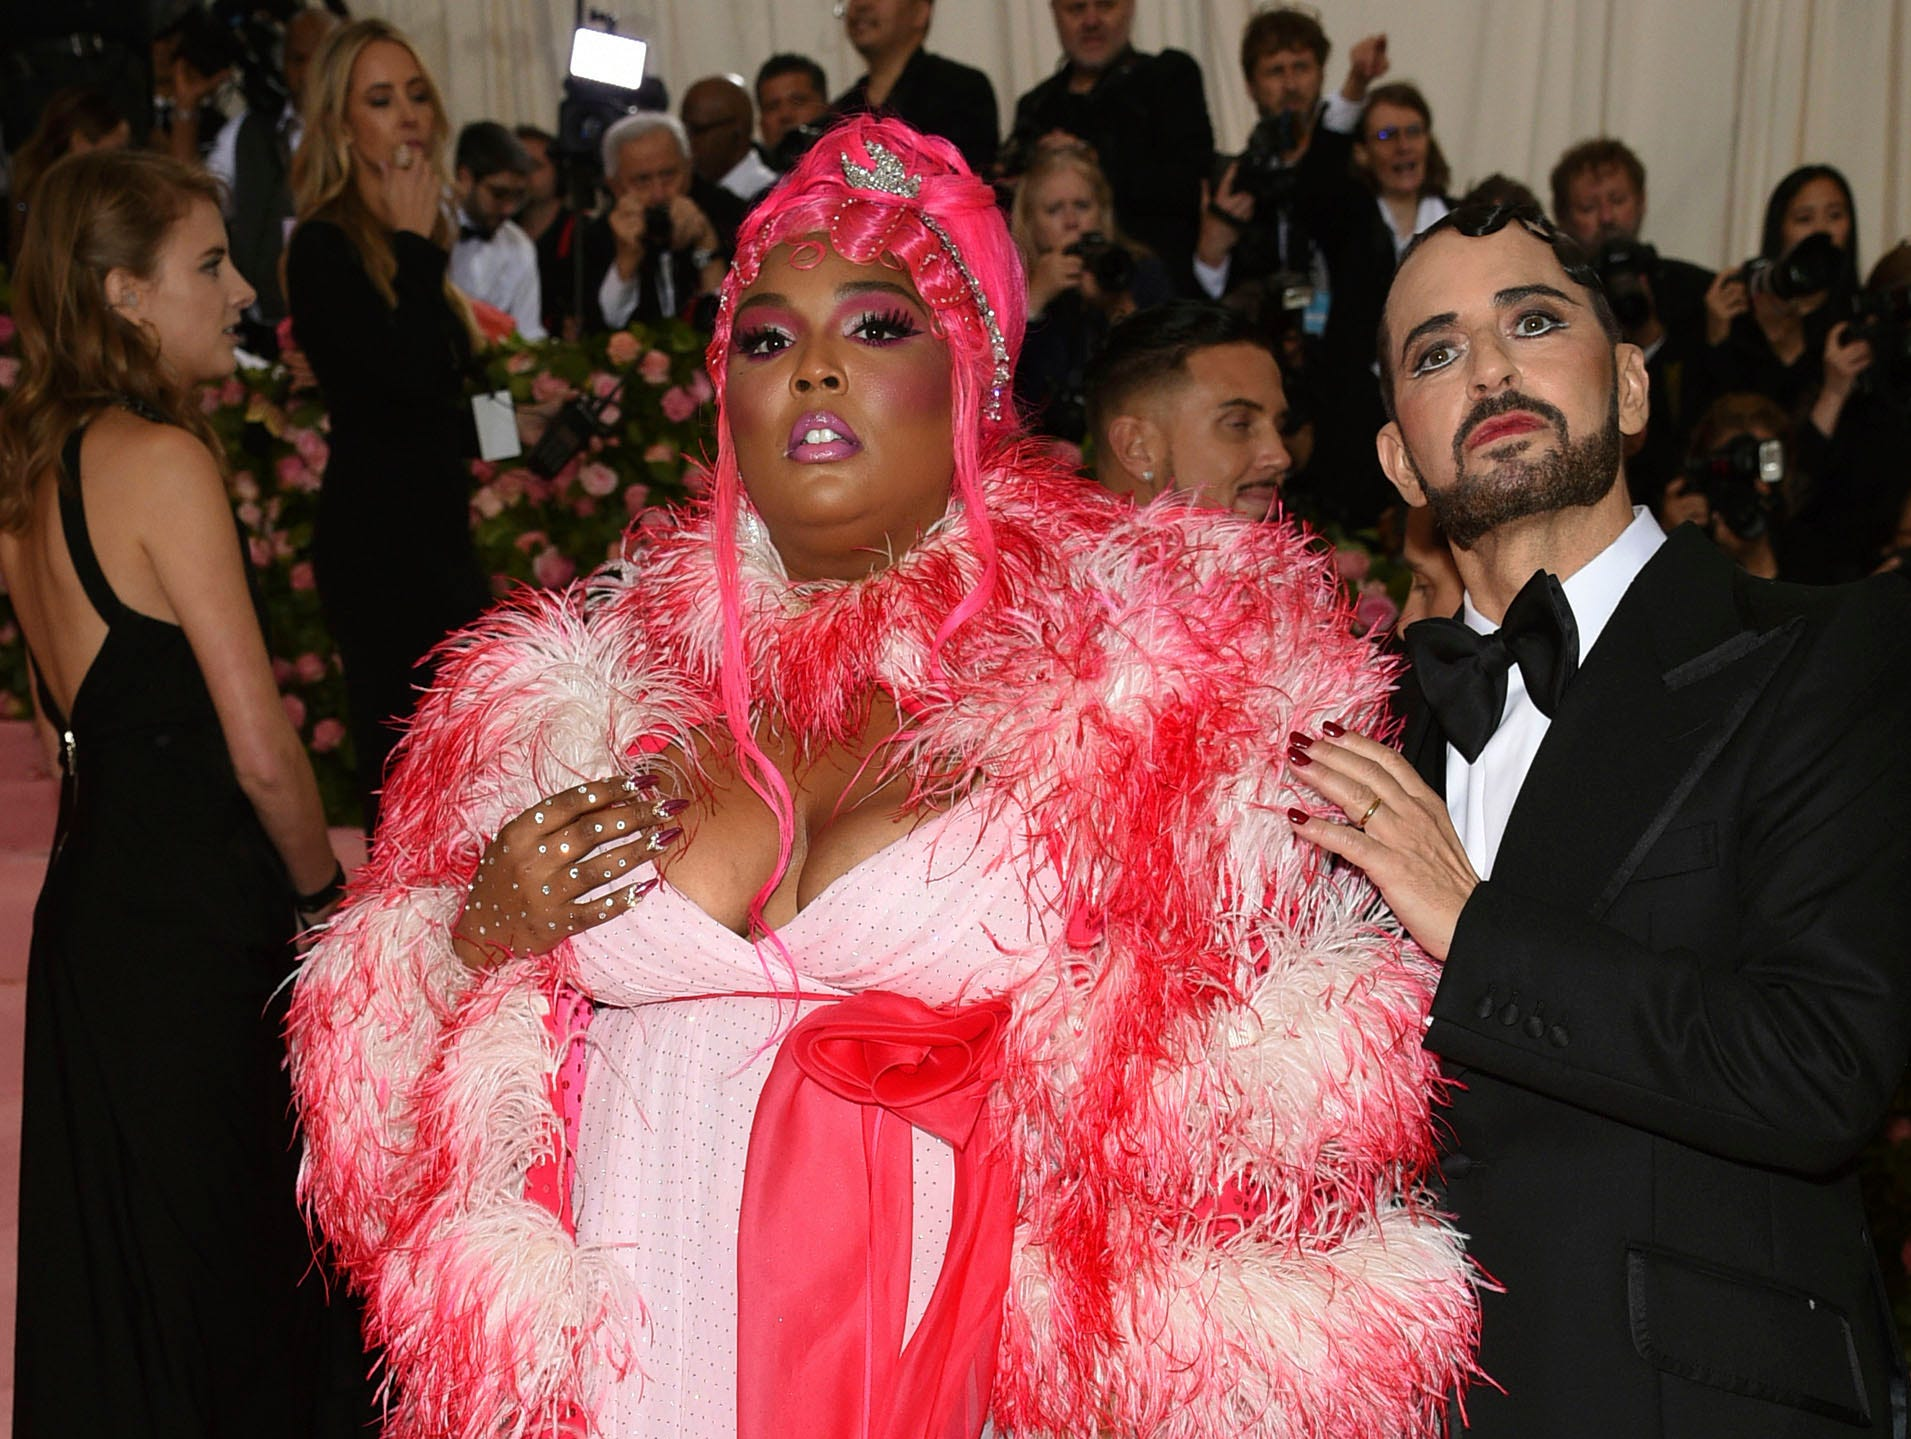 """Lizzo, left, and Marc Jacobs attend The Metropolitan Museum of Art's Costume Institute benefit gala celebrating the opening of the """"Camp: Notes on Fashion"""" exhibition on Monday, May 6, 2019, in New York. (Photo by Evan Agostini/Invision/AP)"""